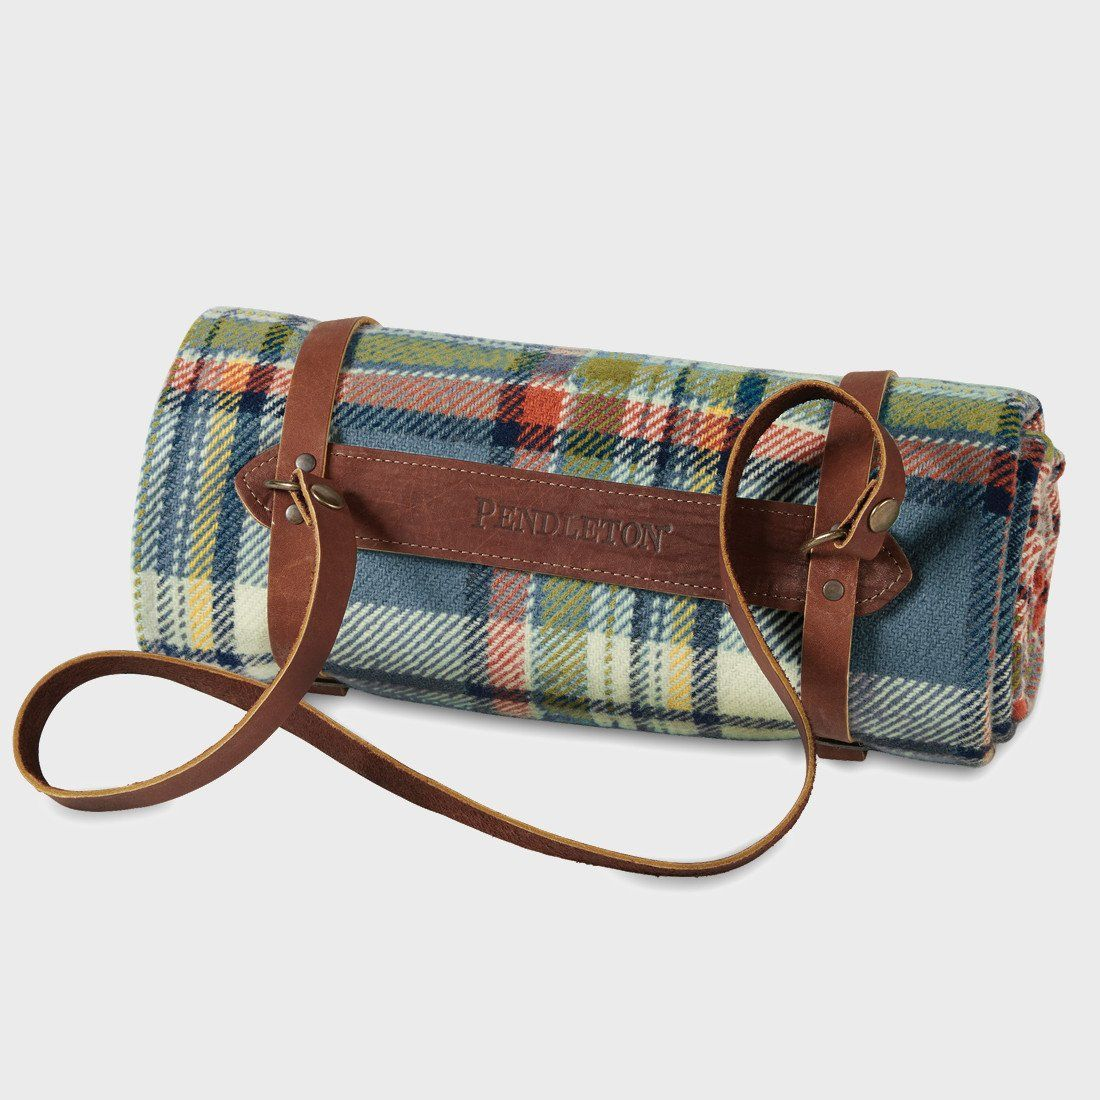 Pendleton Washable Throw With Leather Carrier Slate Sky